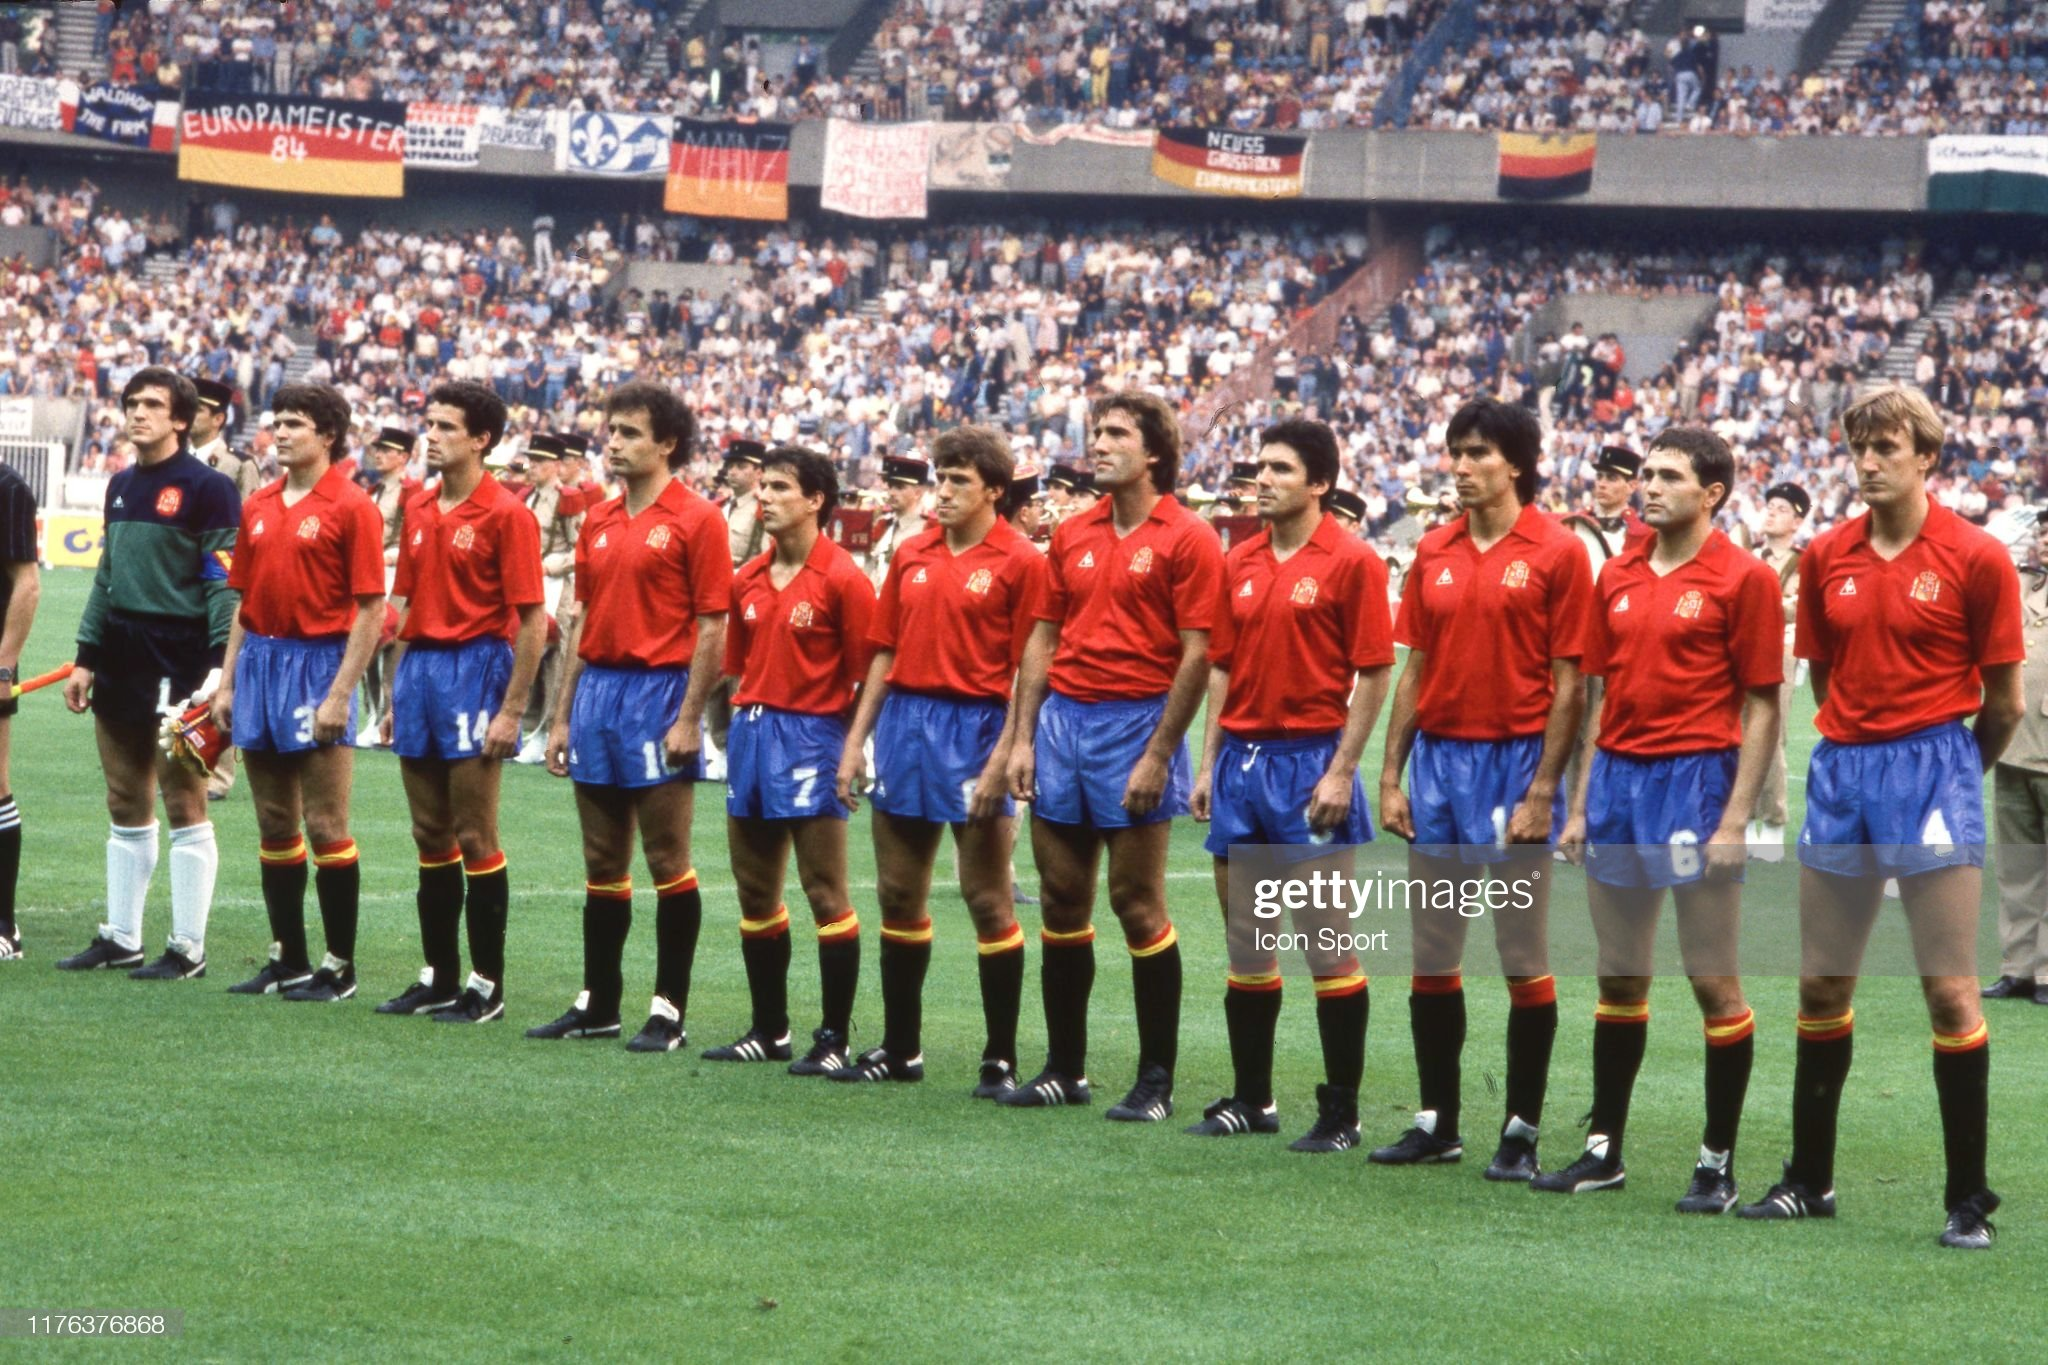 ¿Cuánto mide Rafael Gordillo? - Altura Team-spain-during-the-european-championship-match-between-west-and-picture-id1176376868?s=2048x2048